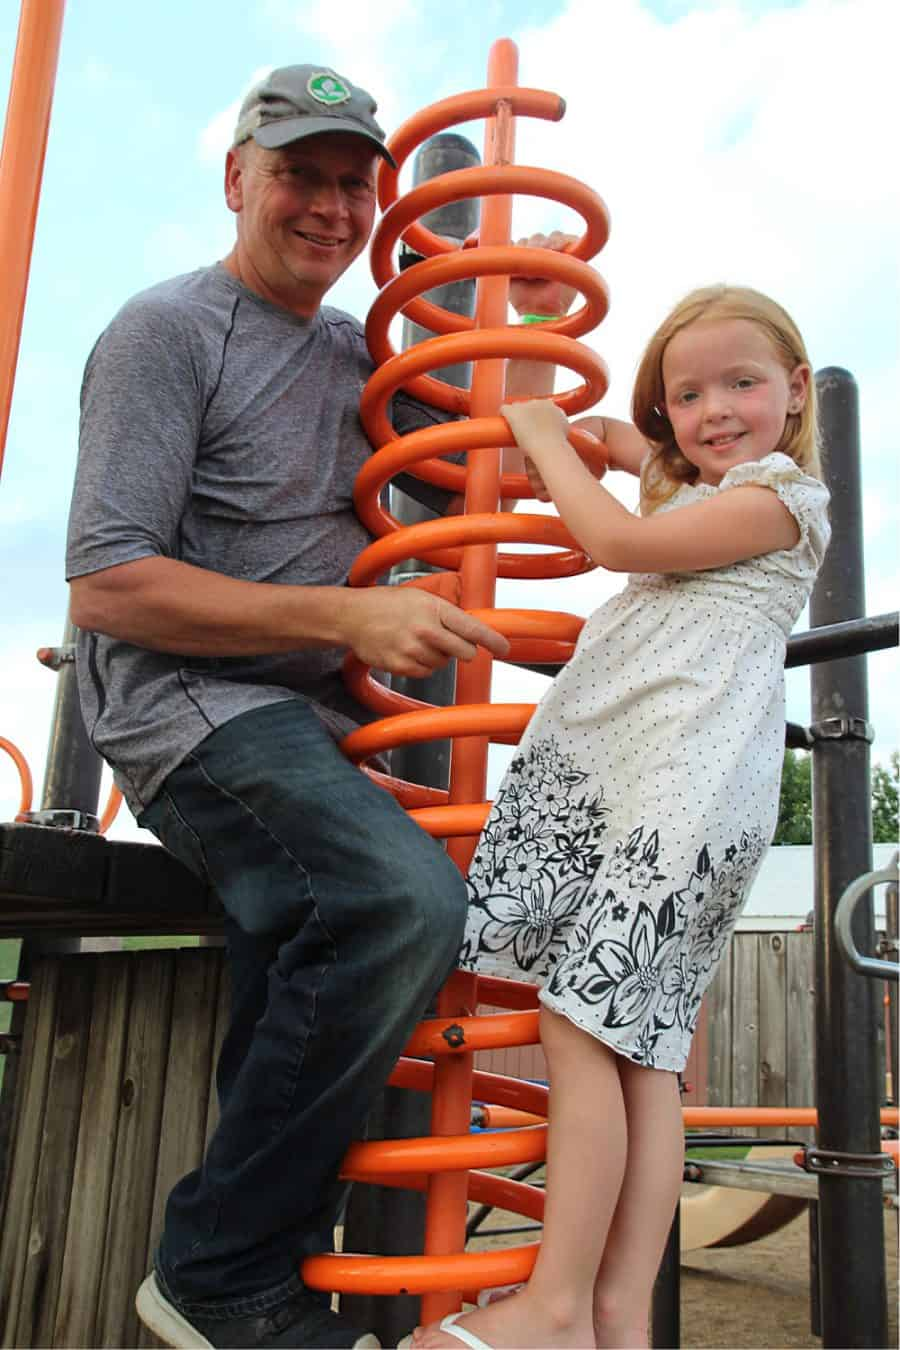 dad and daughter on playground - Jellystone - Top 10 Things To Do In Sioux Falls + The Best Place To Stay!